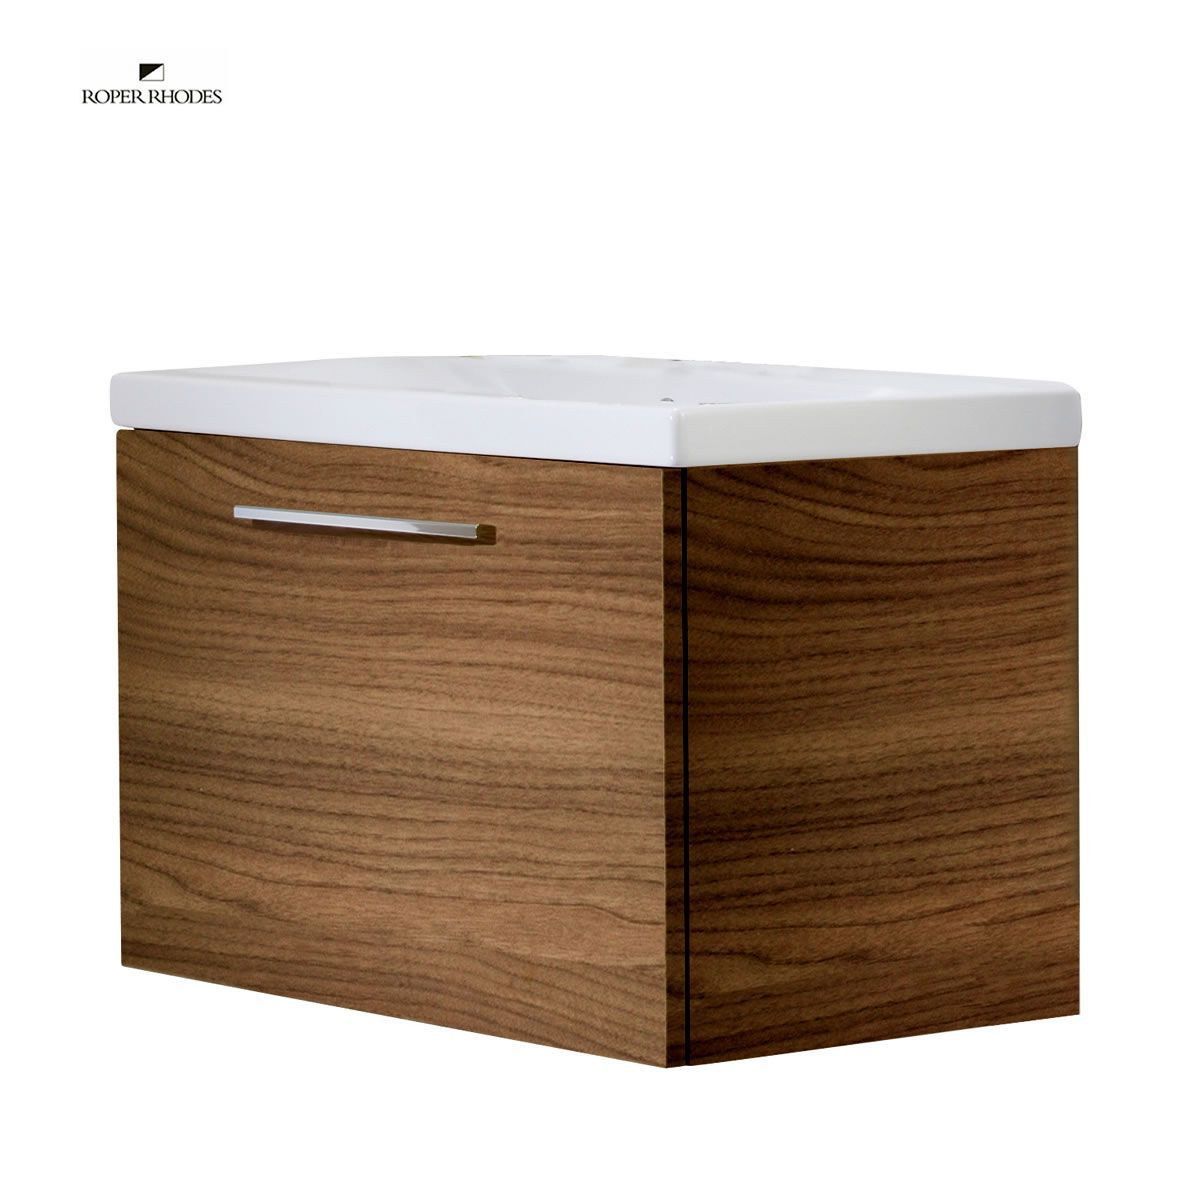 Roper Rhodes Envy Wall Hung Unit with Basin